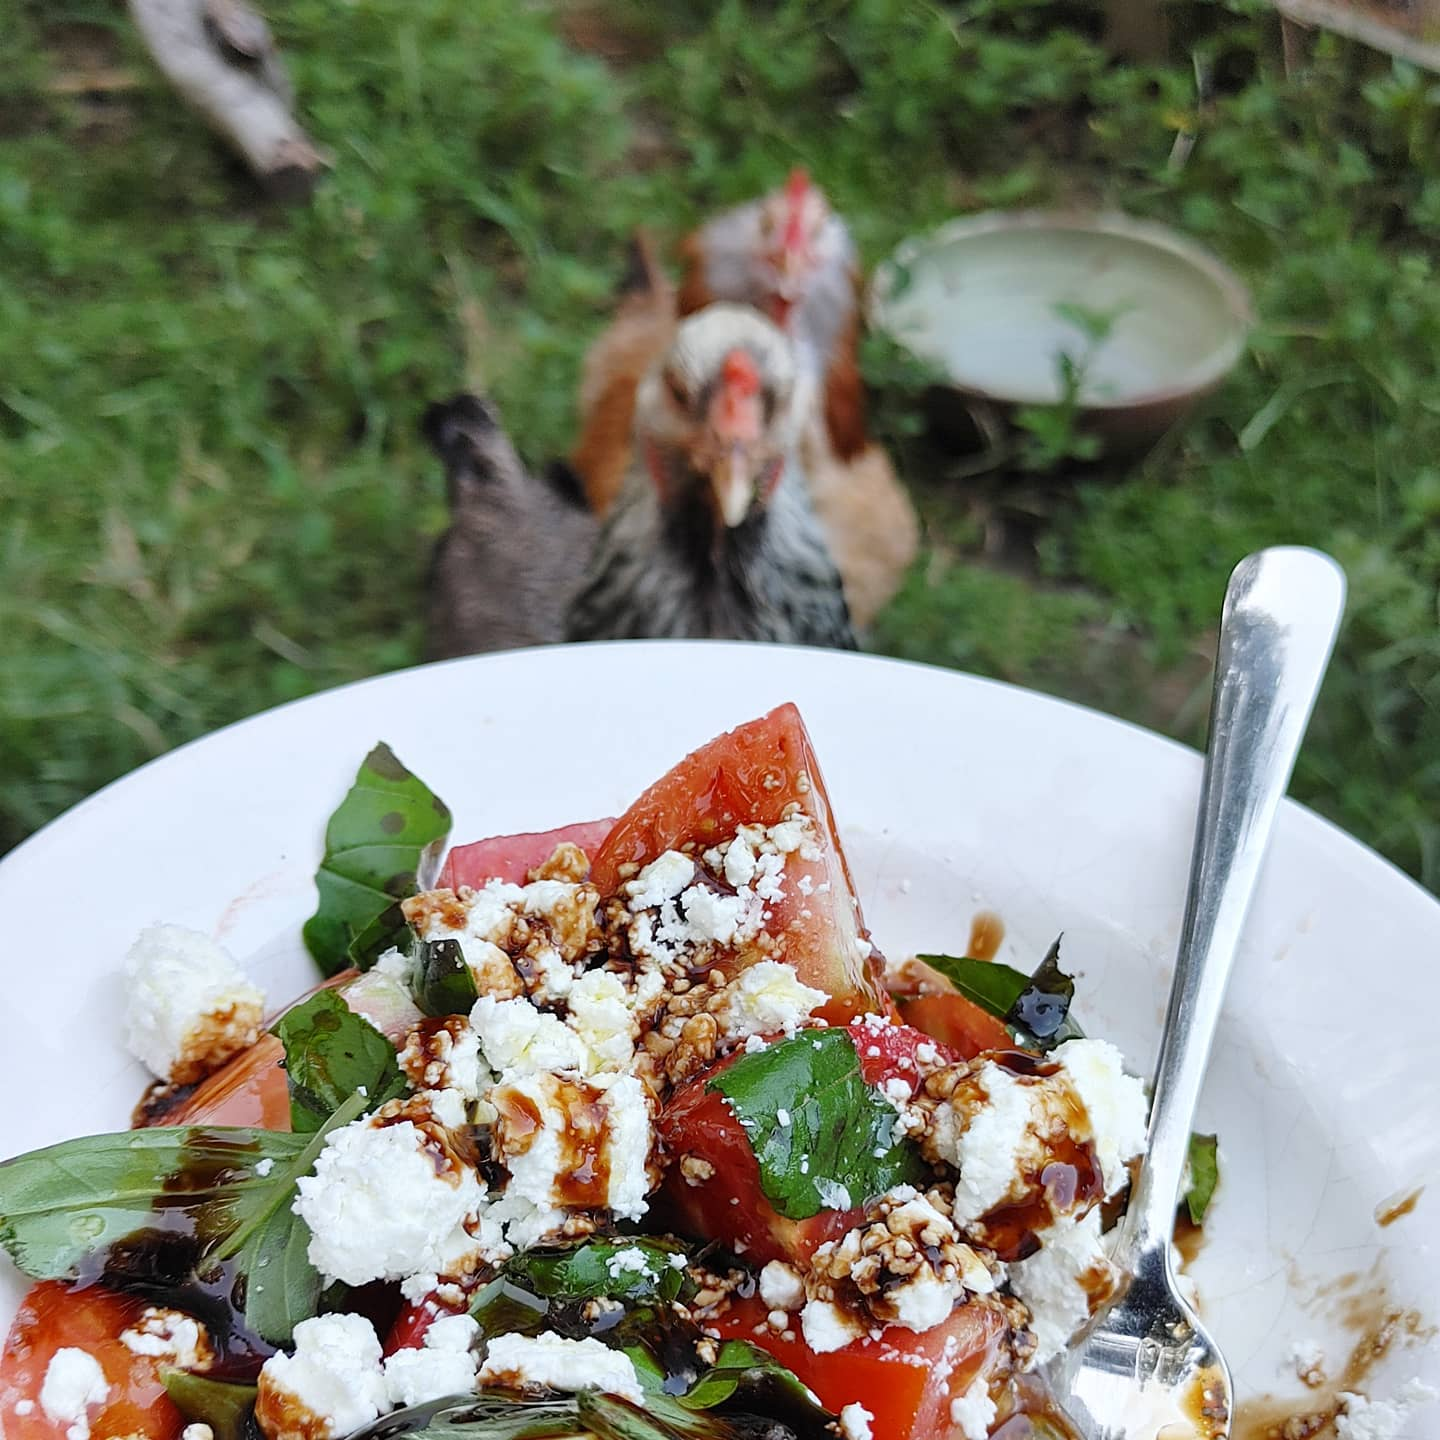 Once again, trying to eat dinner while watching the chickens. Instead, being watched by the chickens while eating dinner! Tomatoes by me, basil by @shadygrovefarmstead and happy goat cheese by @cattywampus.acres47. Eat local folks! Farmers market Tuesdays at 6:30 at @slowpourbrewing in downtown Lawrenceville, GA.  #